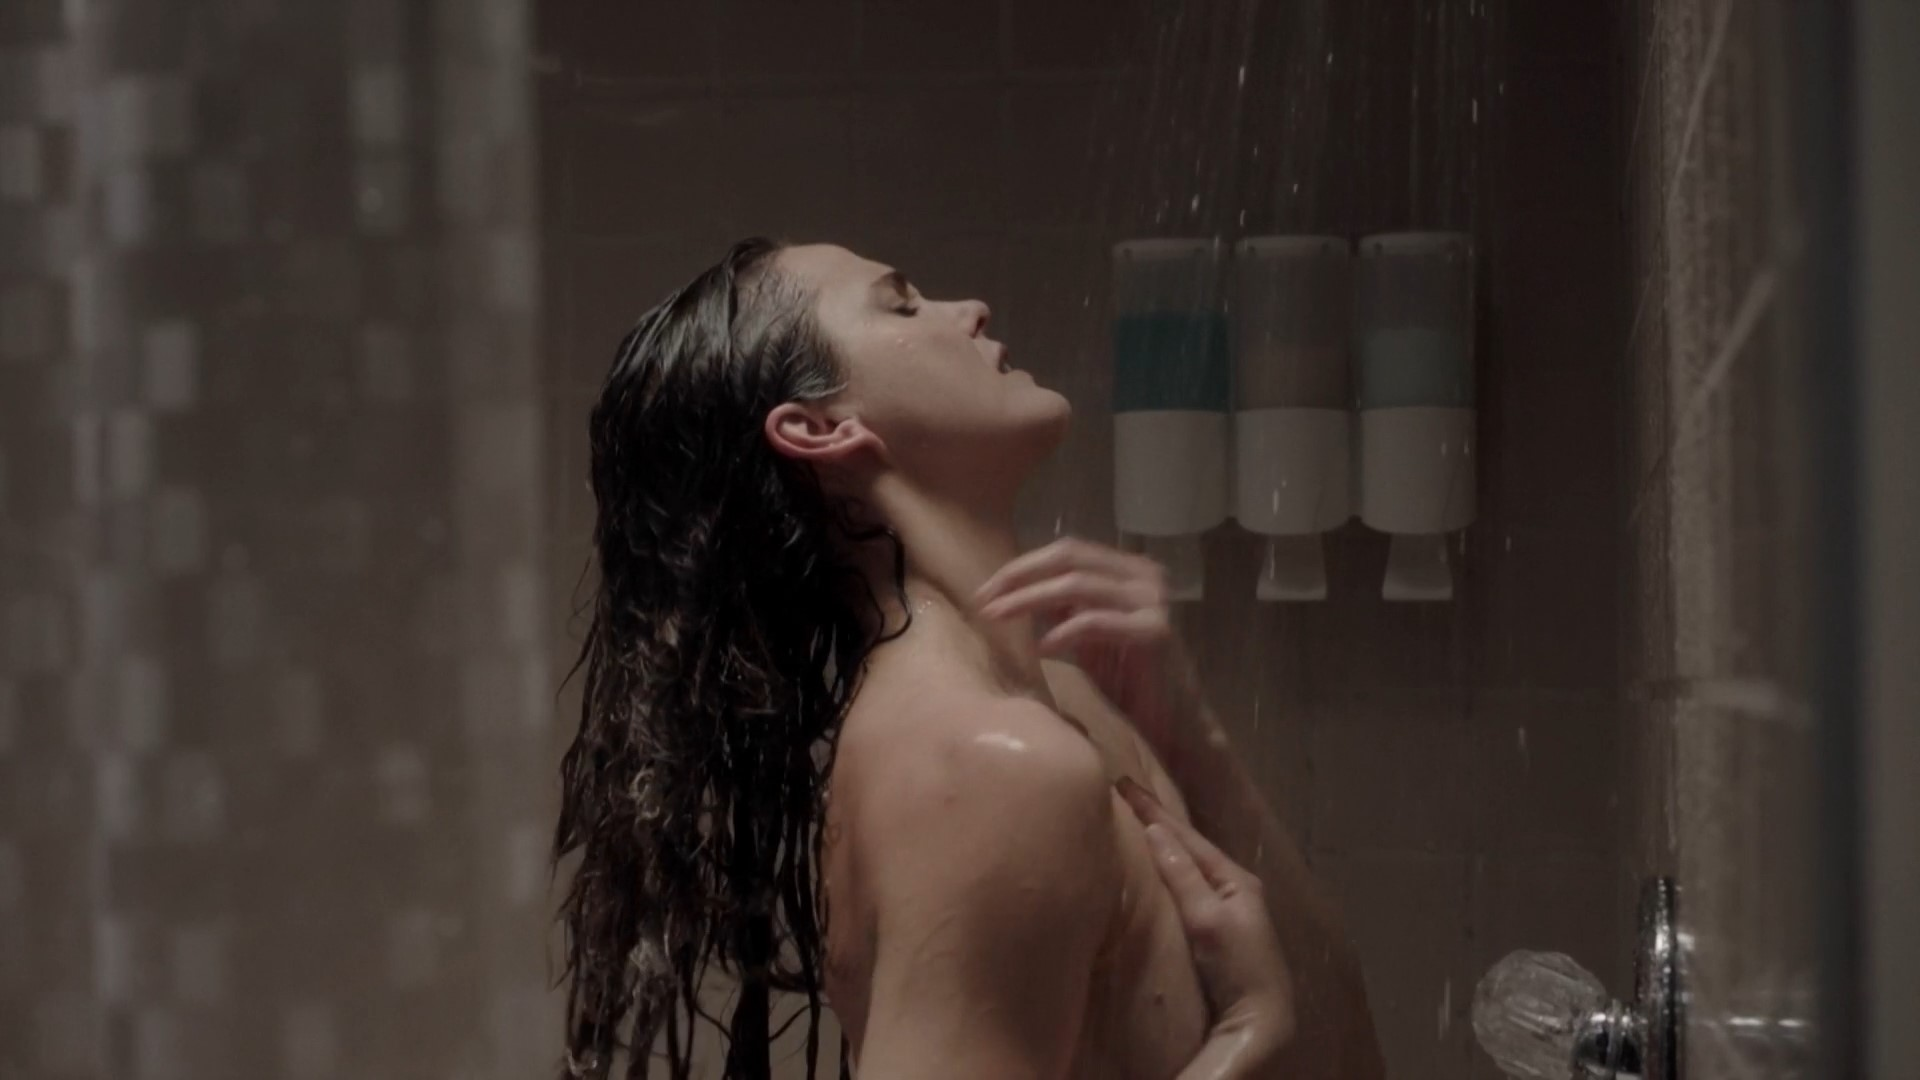 Boobs Topless Keri Russell naked photo 2017